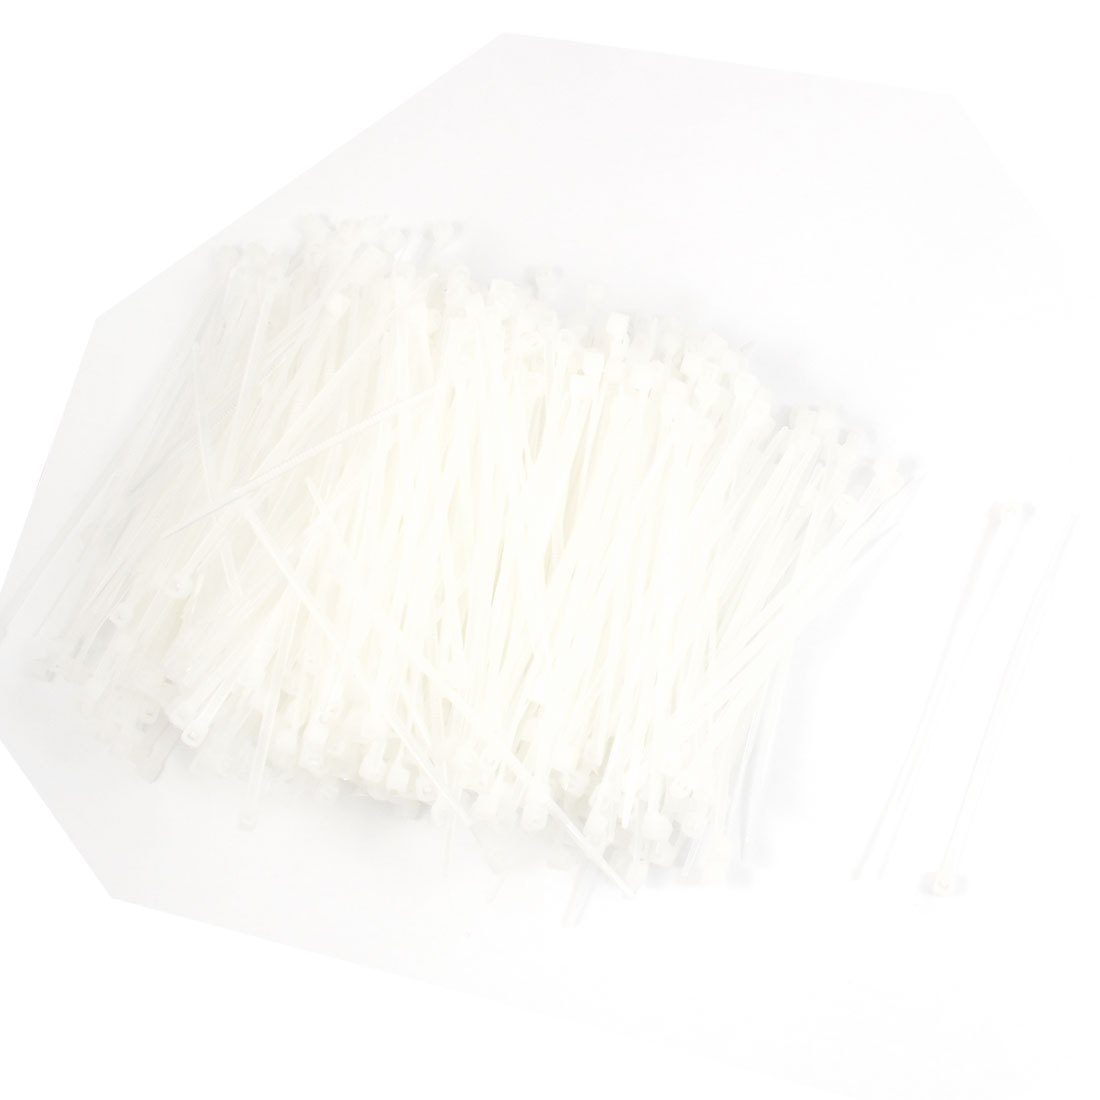 "1000 Pcs 75mm x 2mm Self Locking Wire Cable Zip Tie 3"" White"